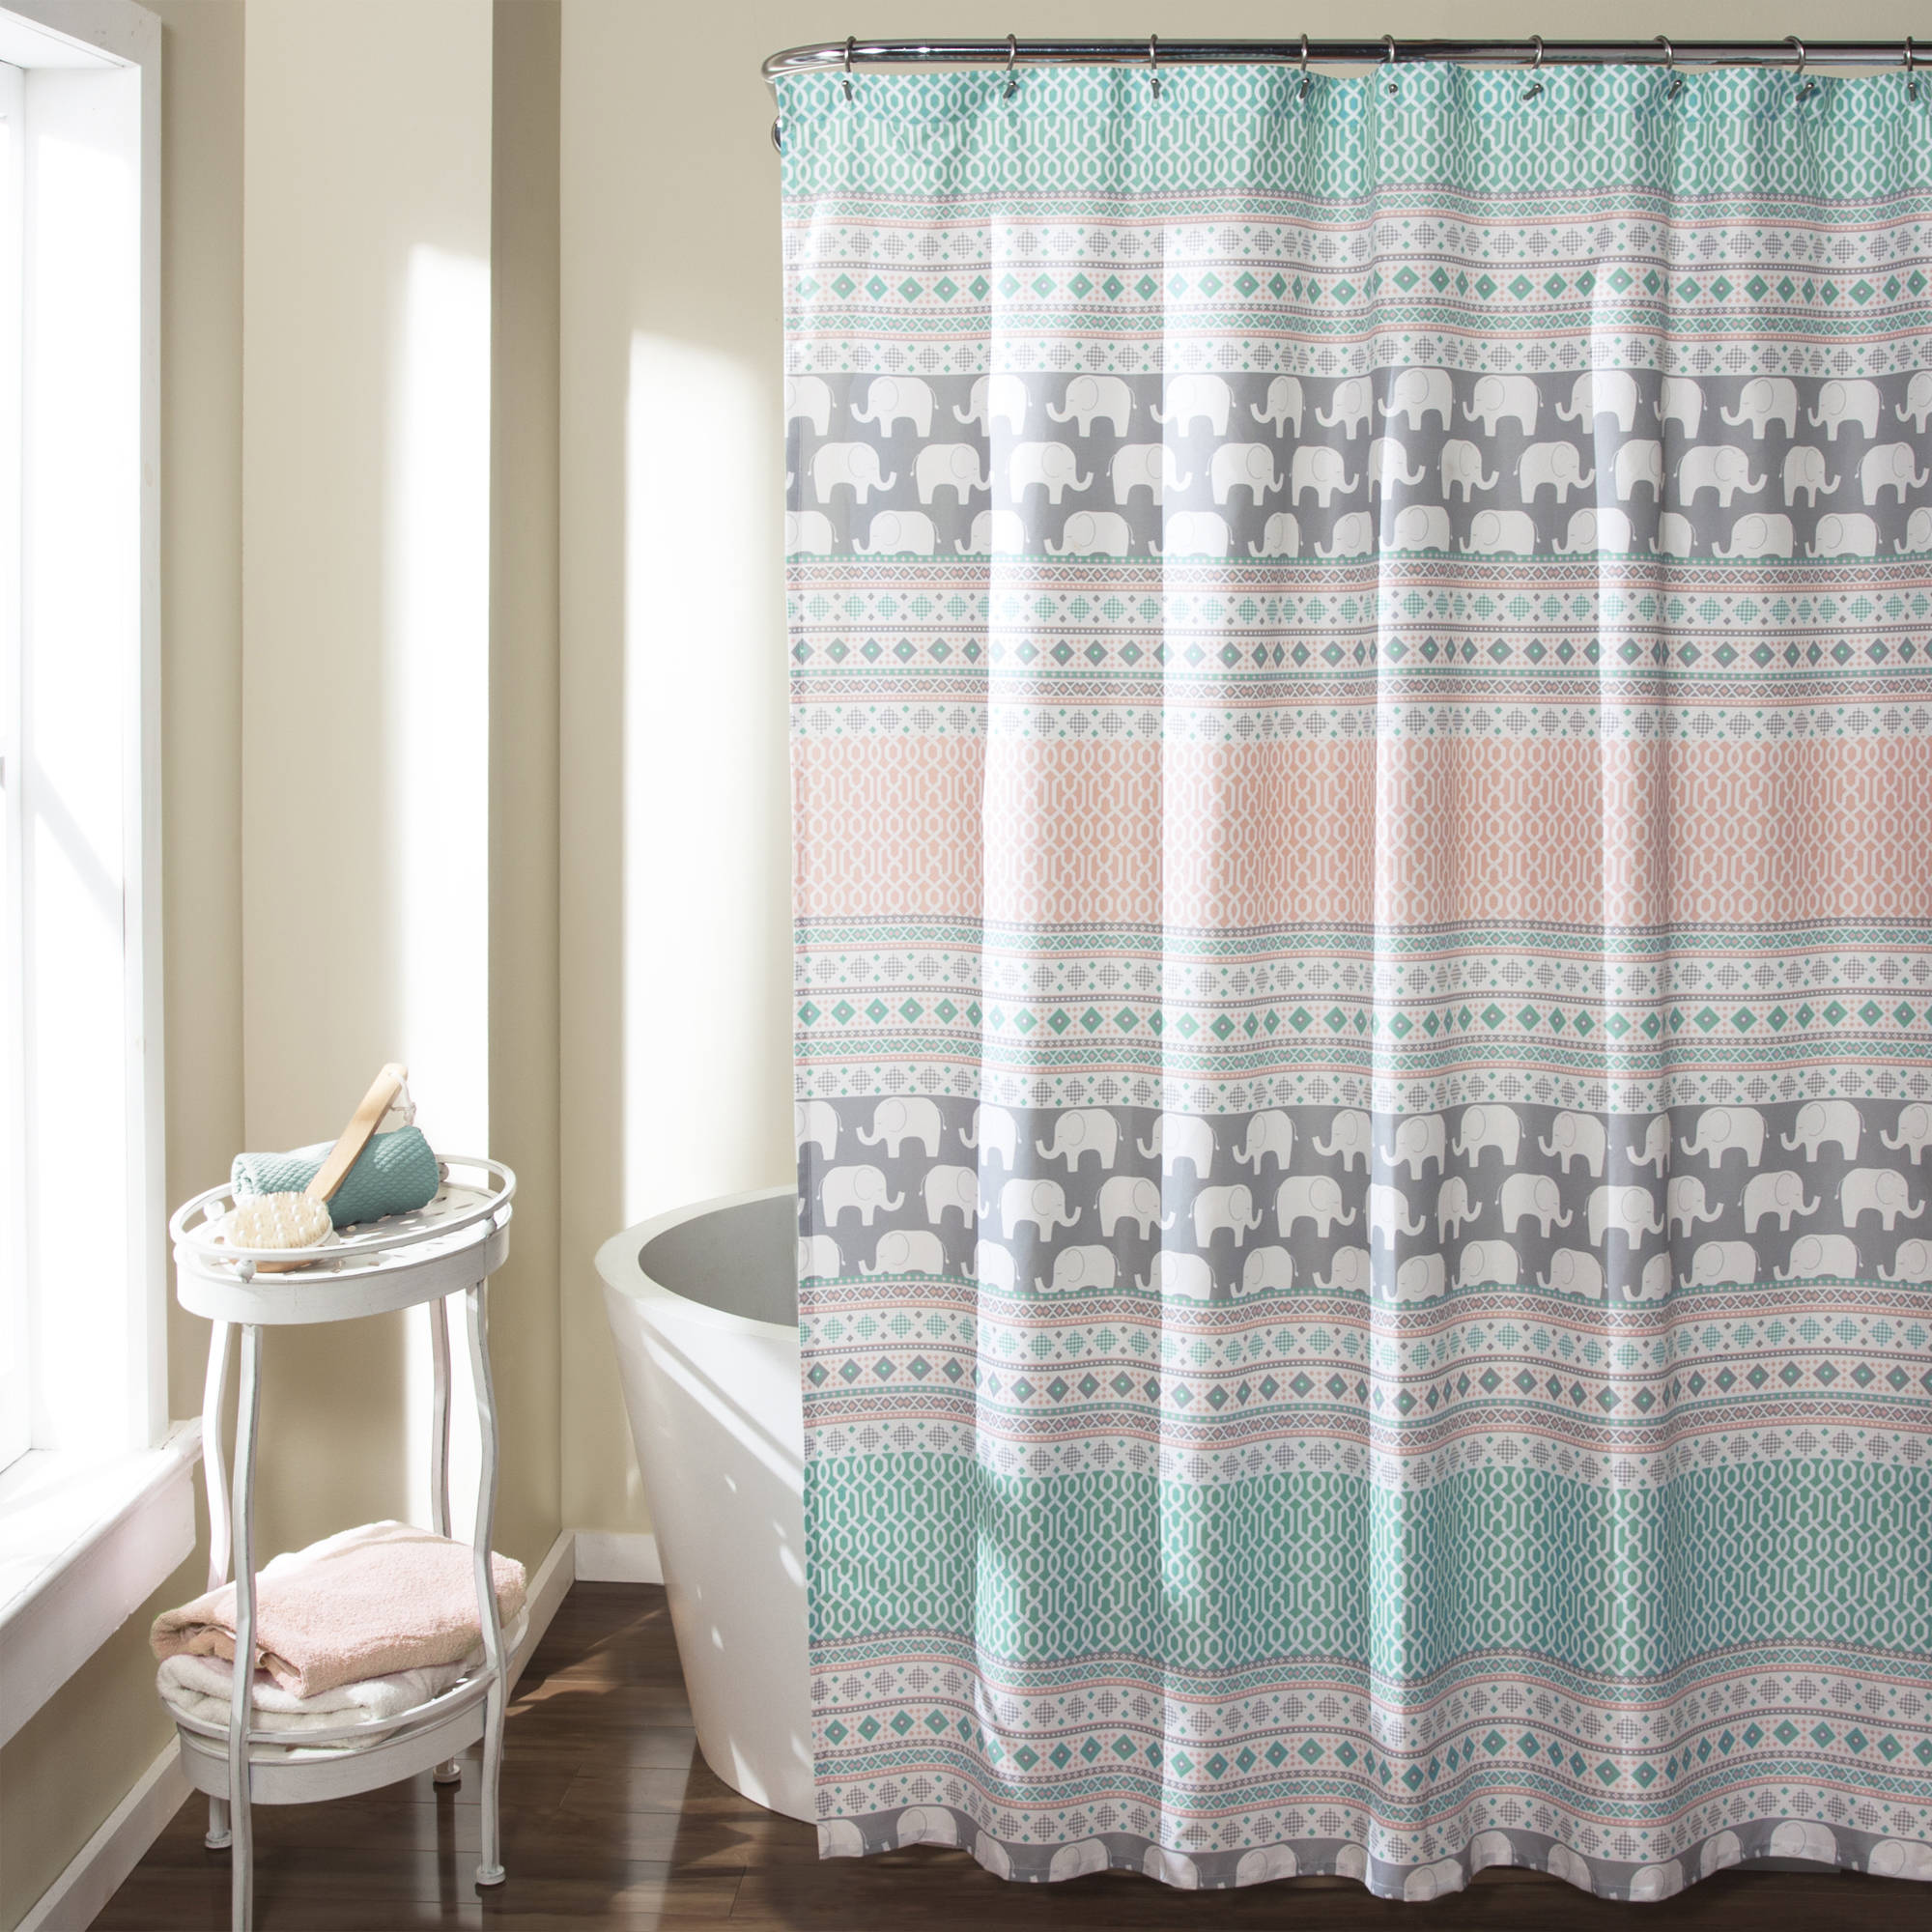 teal striped shower curtain.  Elephant Stripe Shower Curtain Turquoise Pink Walmart com